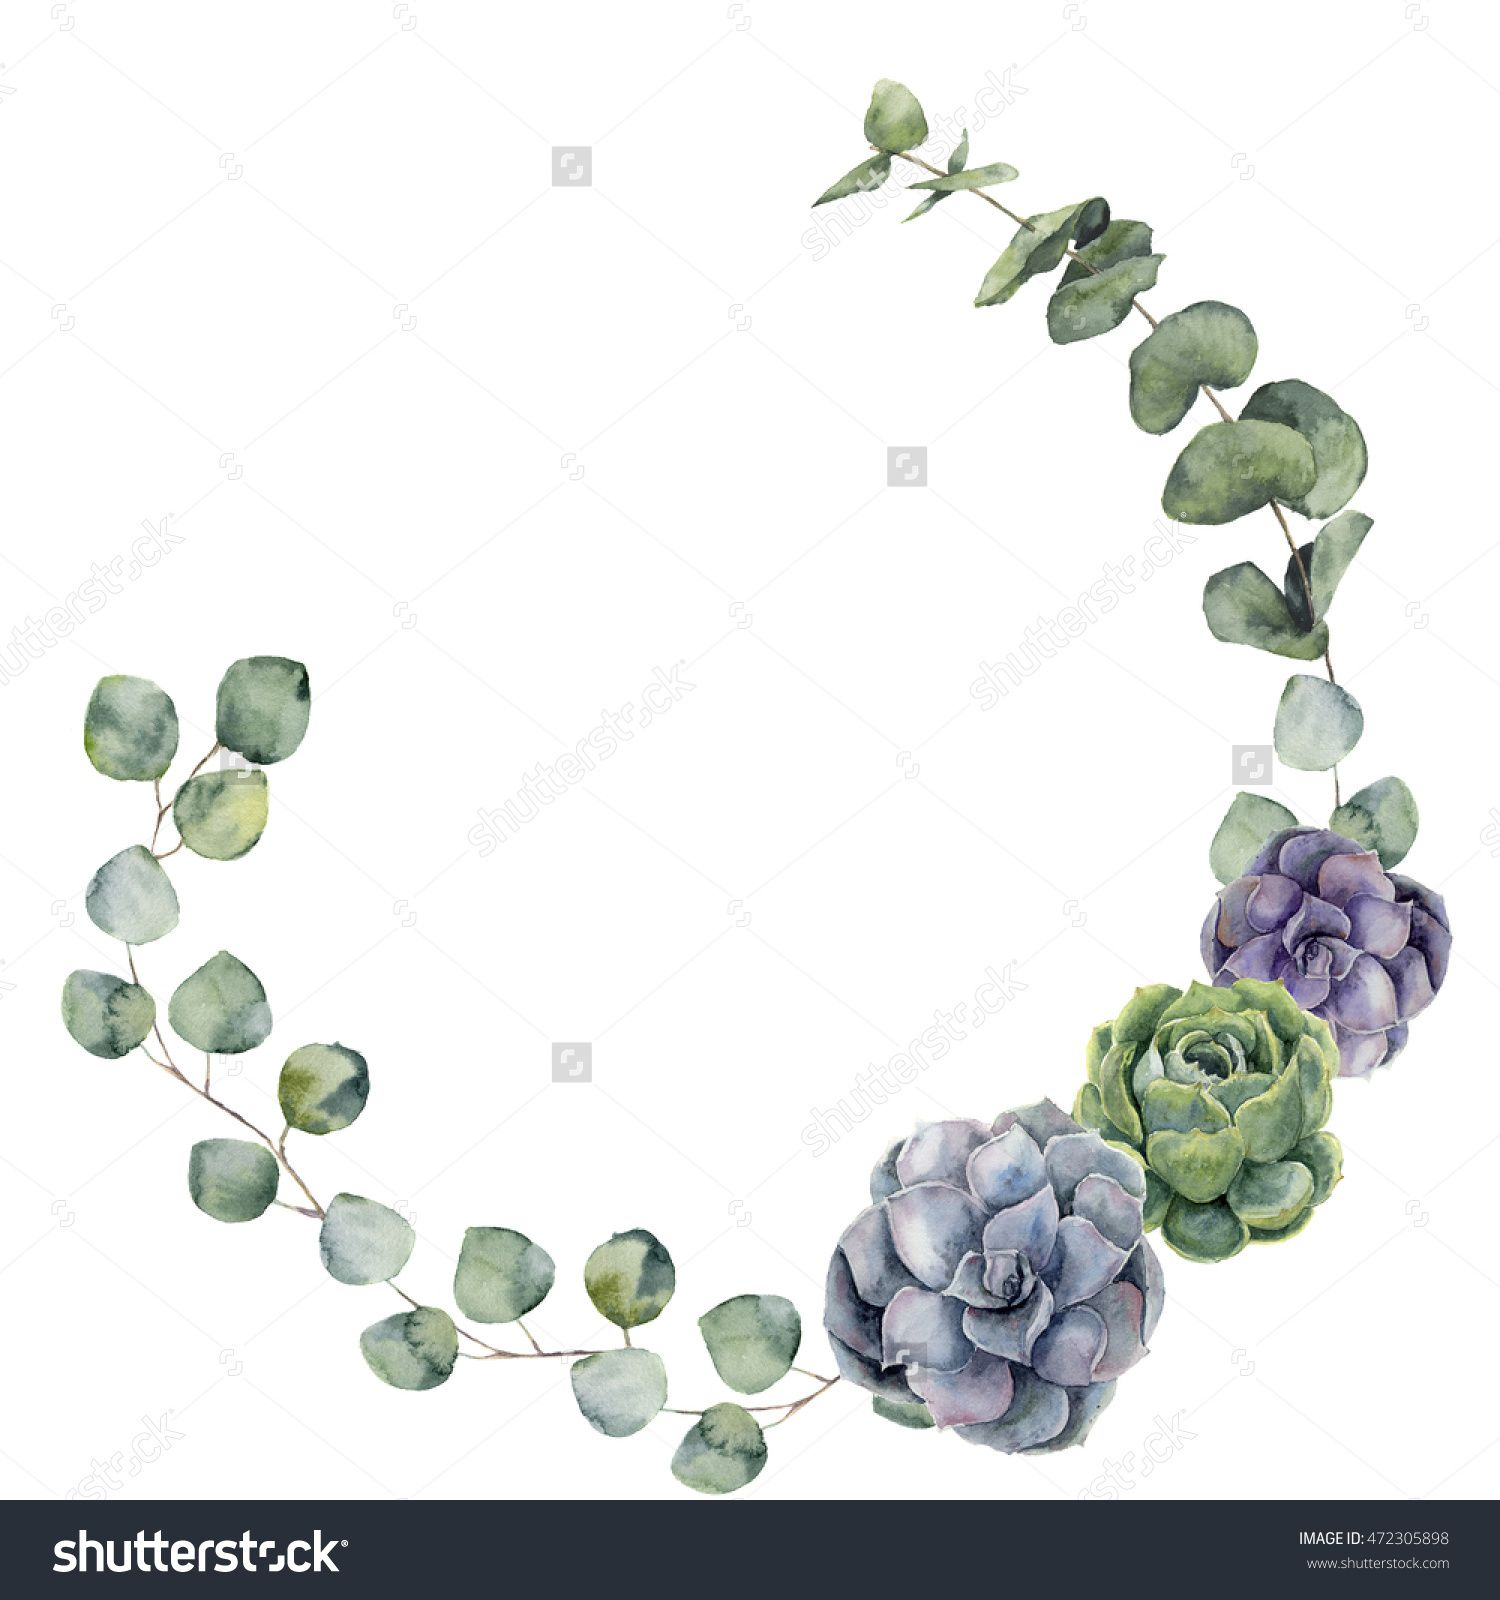 Watercolor floral border with baby, silver dollar eucalyptus and succulent. Hand painted floral wreath with branches, leaves of eucalyptus isolated on white background. For design or background